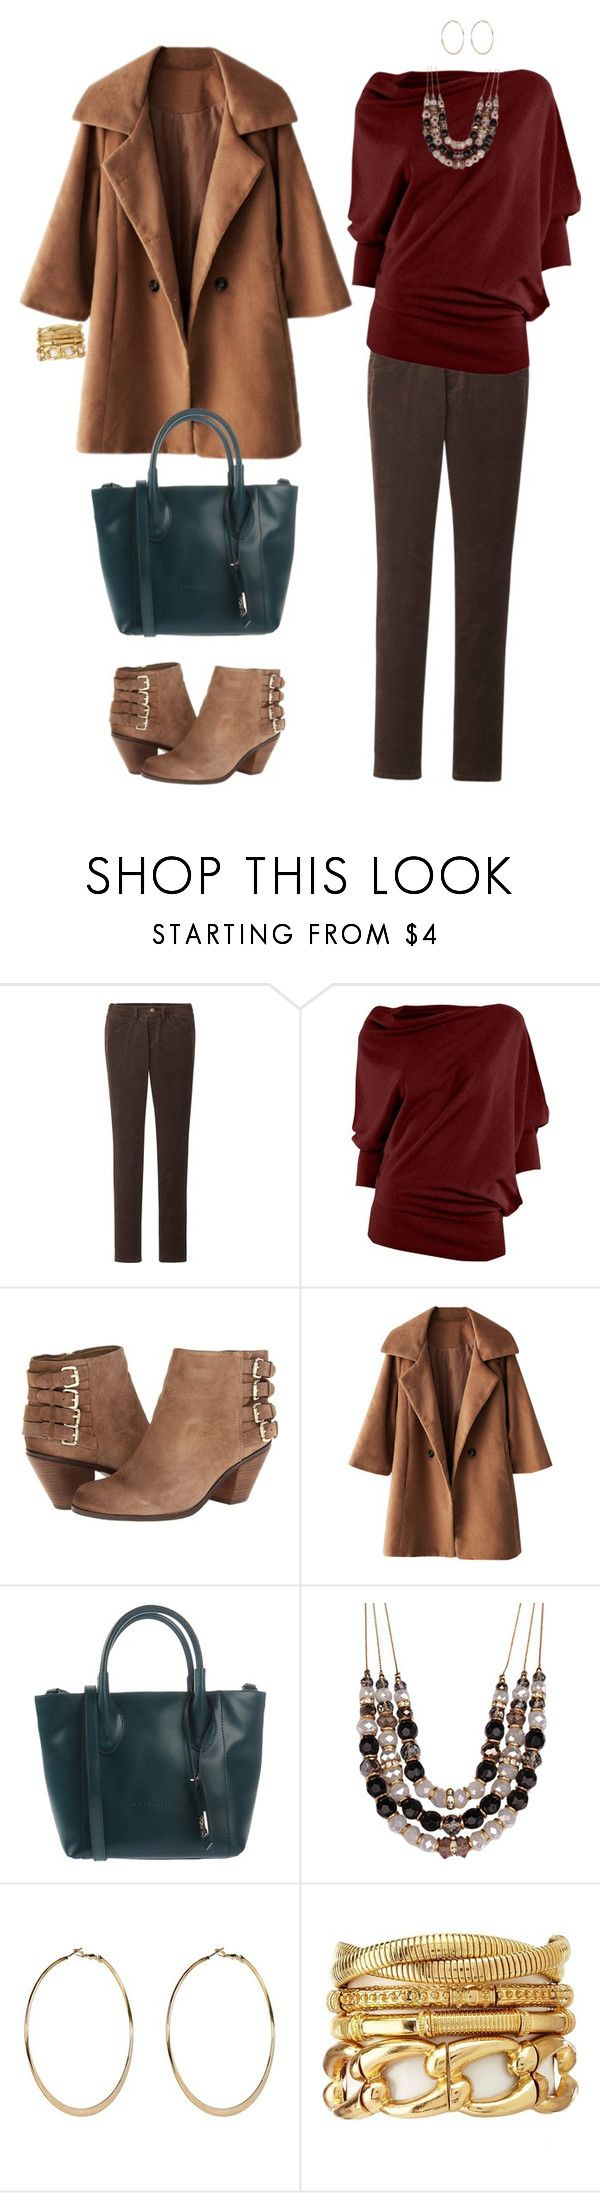 Casual Friday! by nedriaames on Polyvore featuring Max Studio, Uniqlo, Sam Edelman, Coccinelle and Charlotte Russe